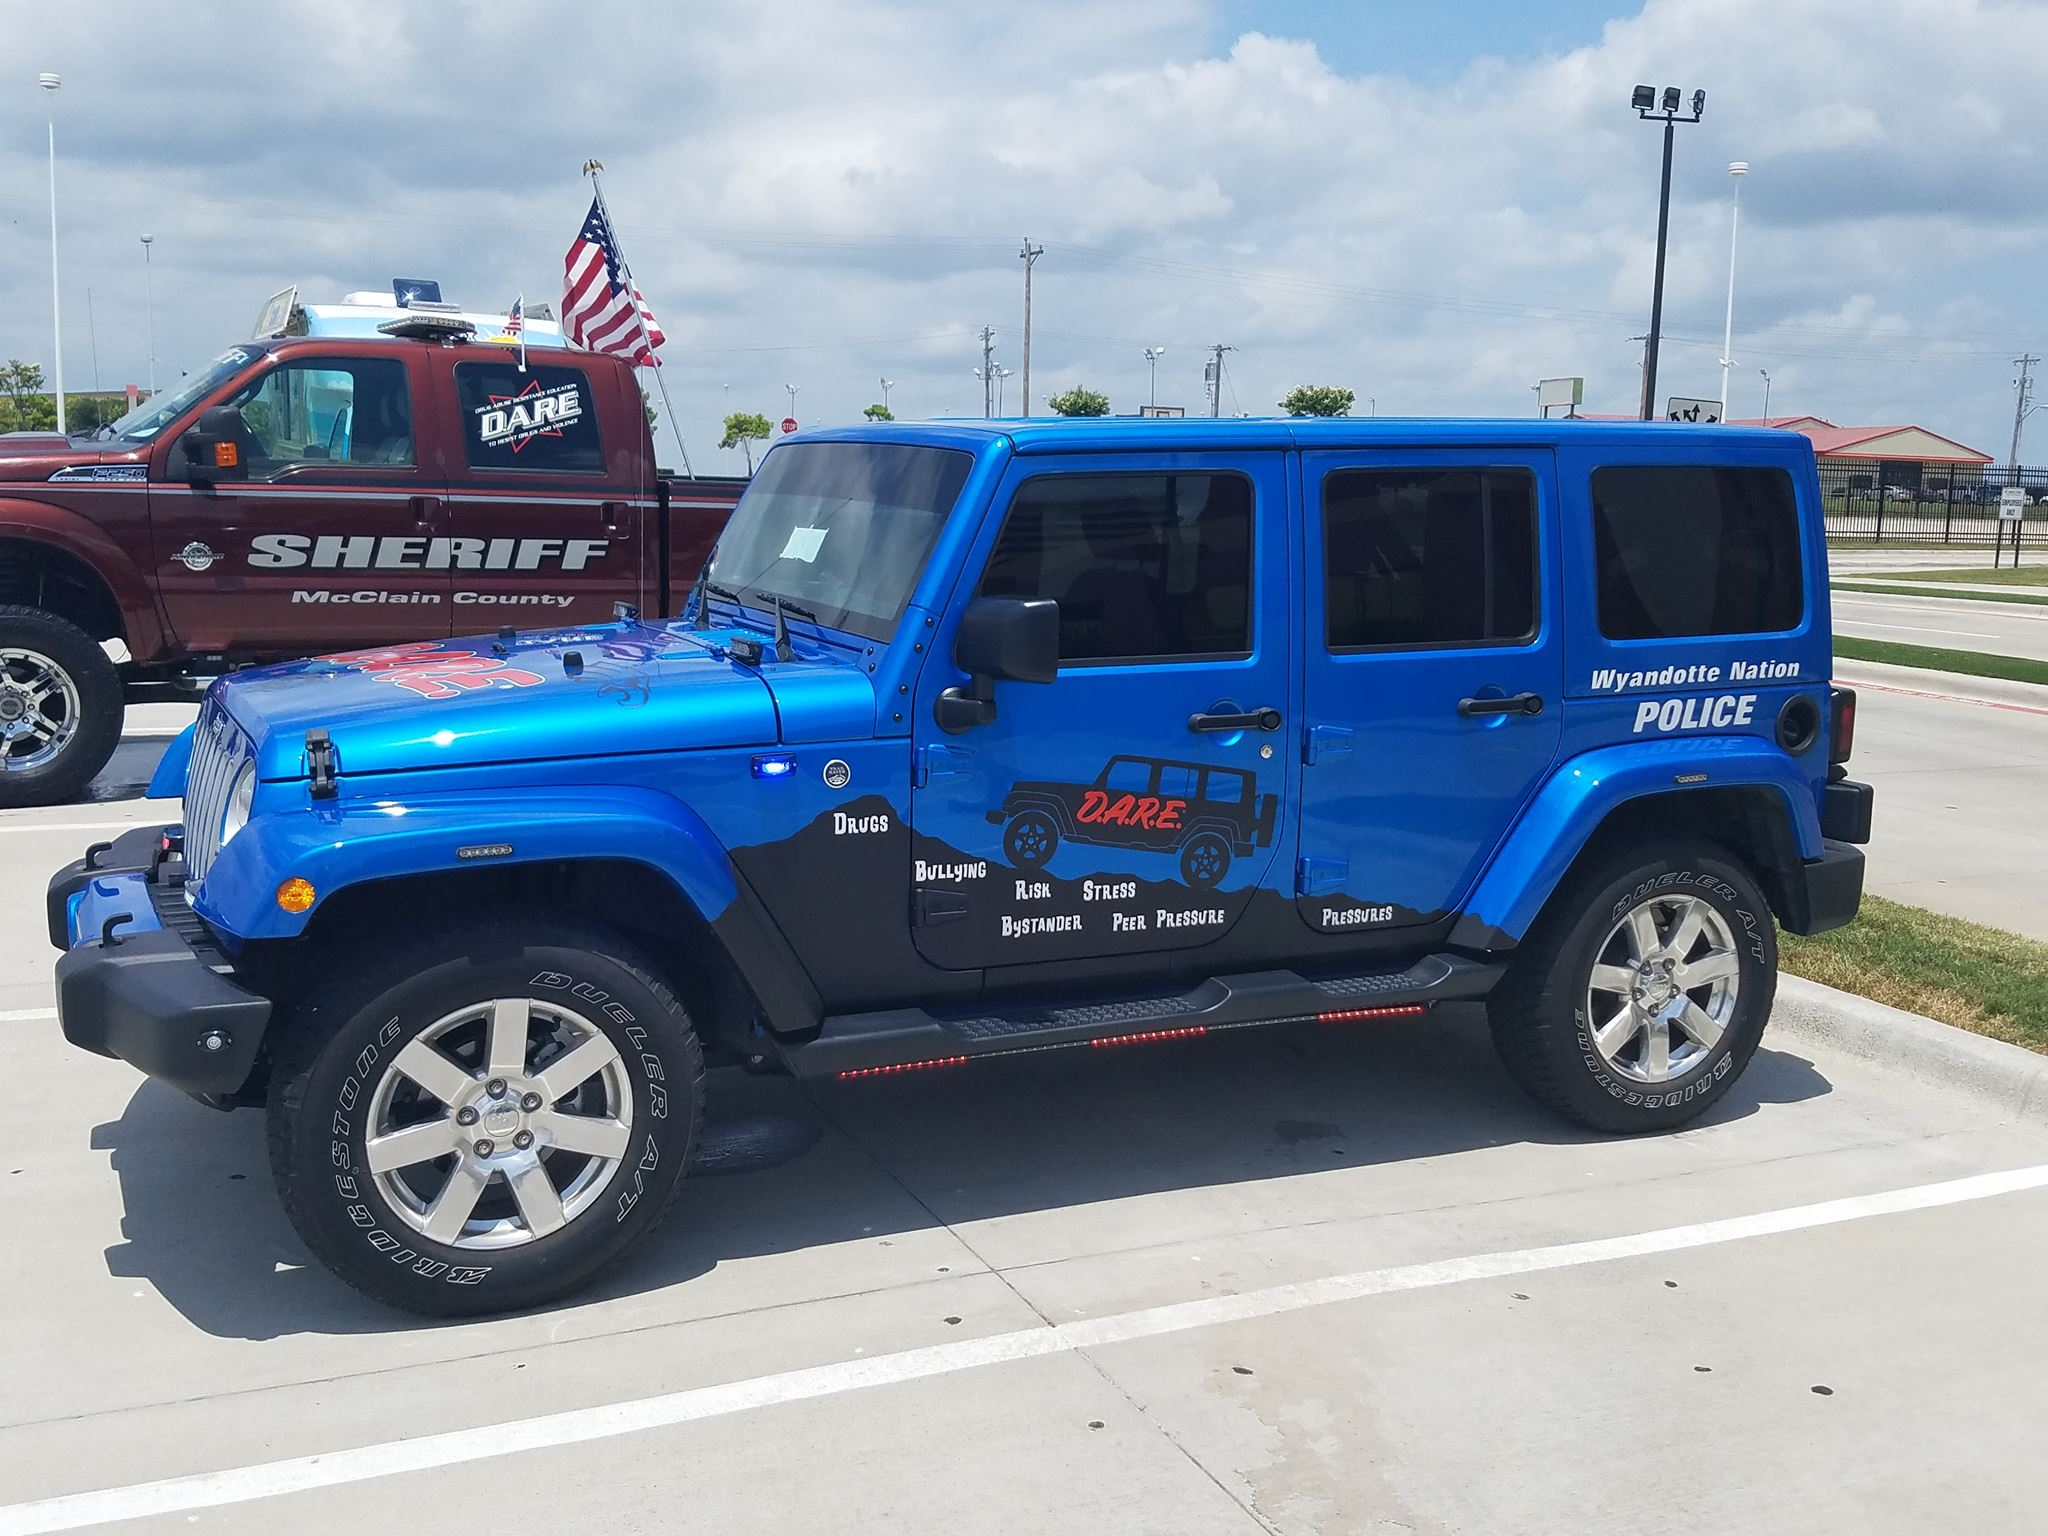 Wyandotte Nation Police Dept. vehicle. (Courtesy of Tony Martinez/KTUL)